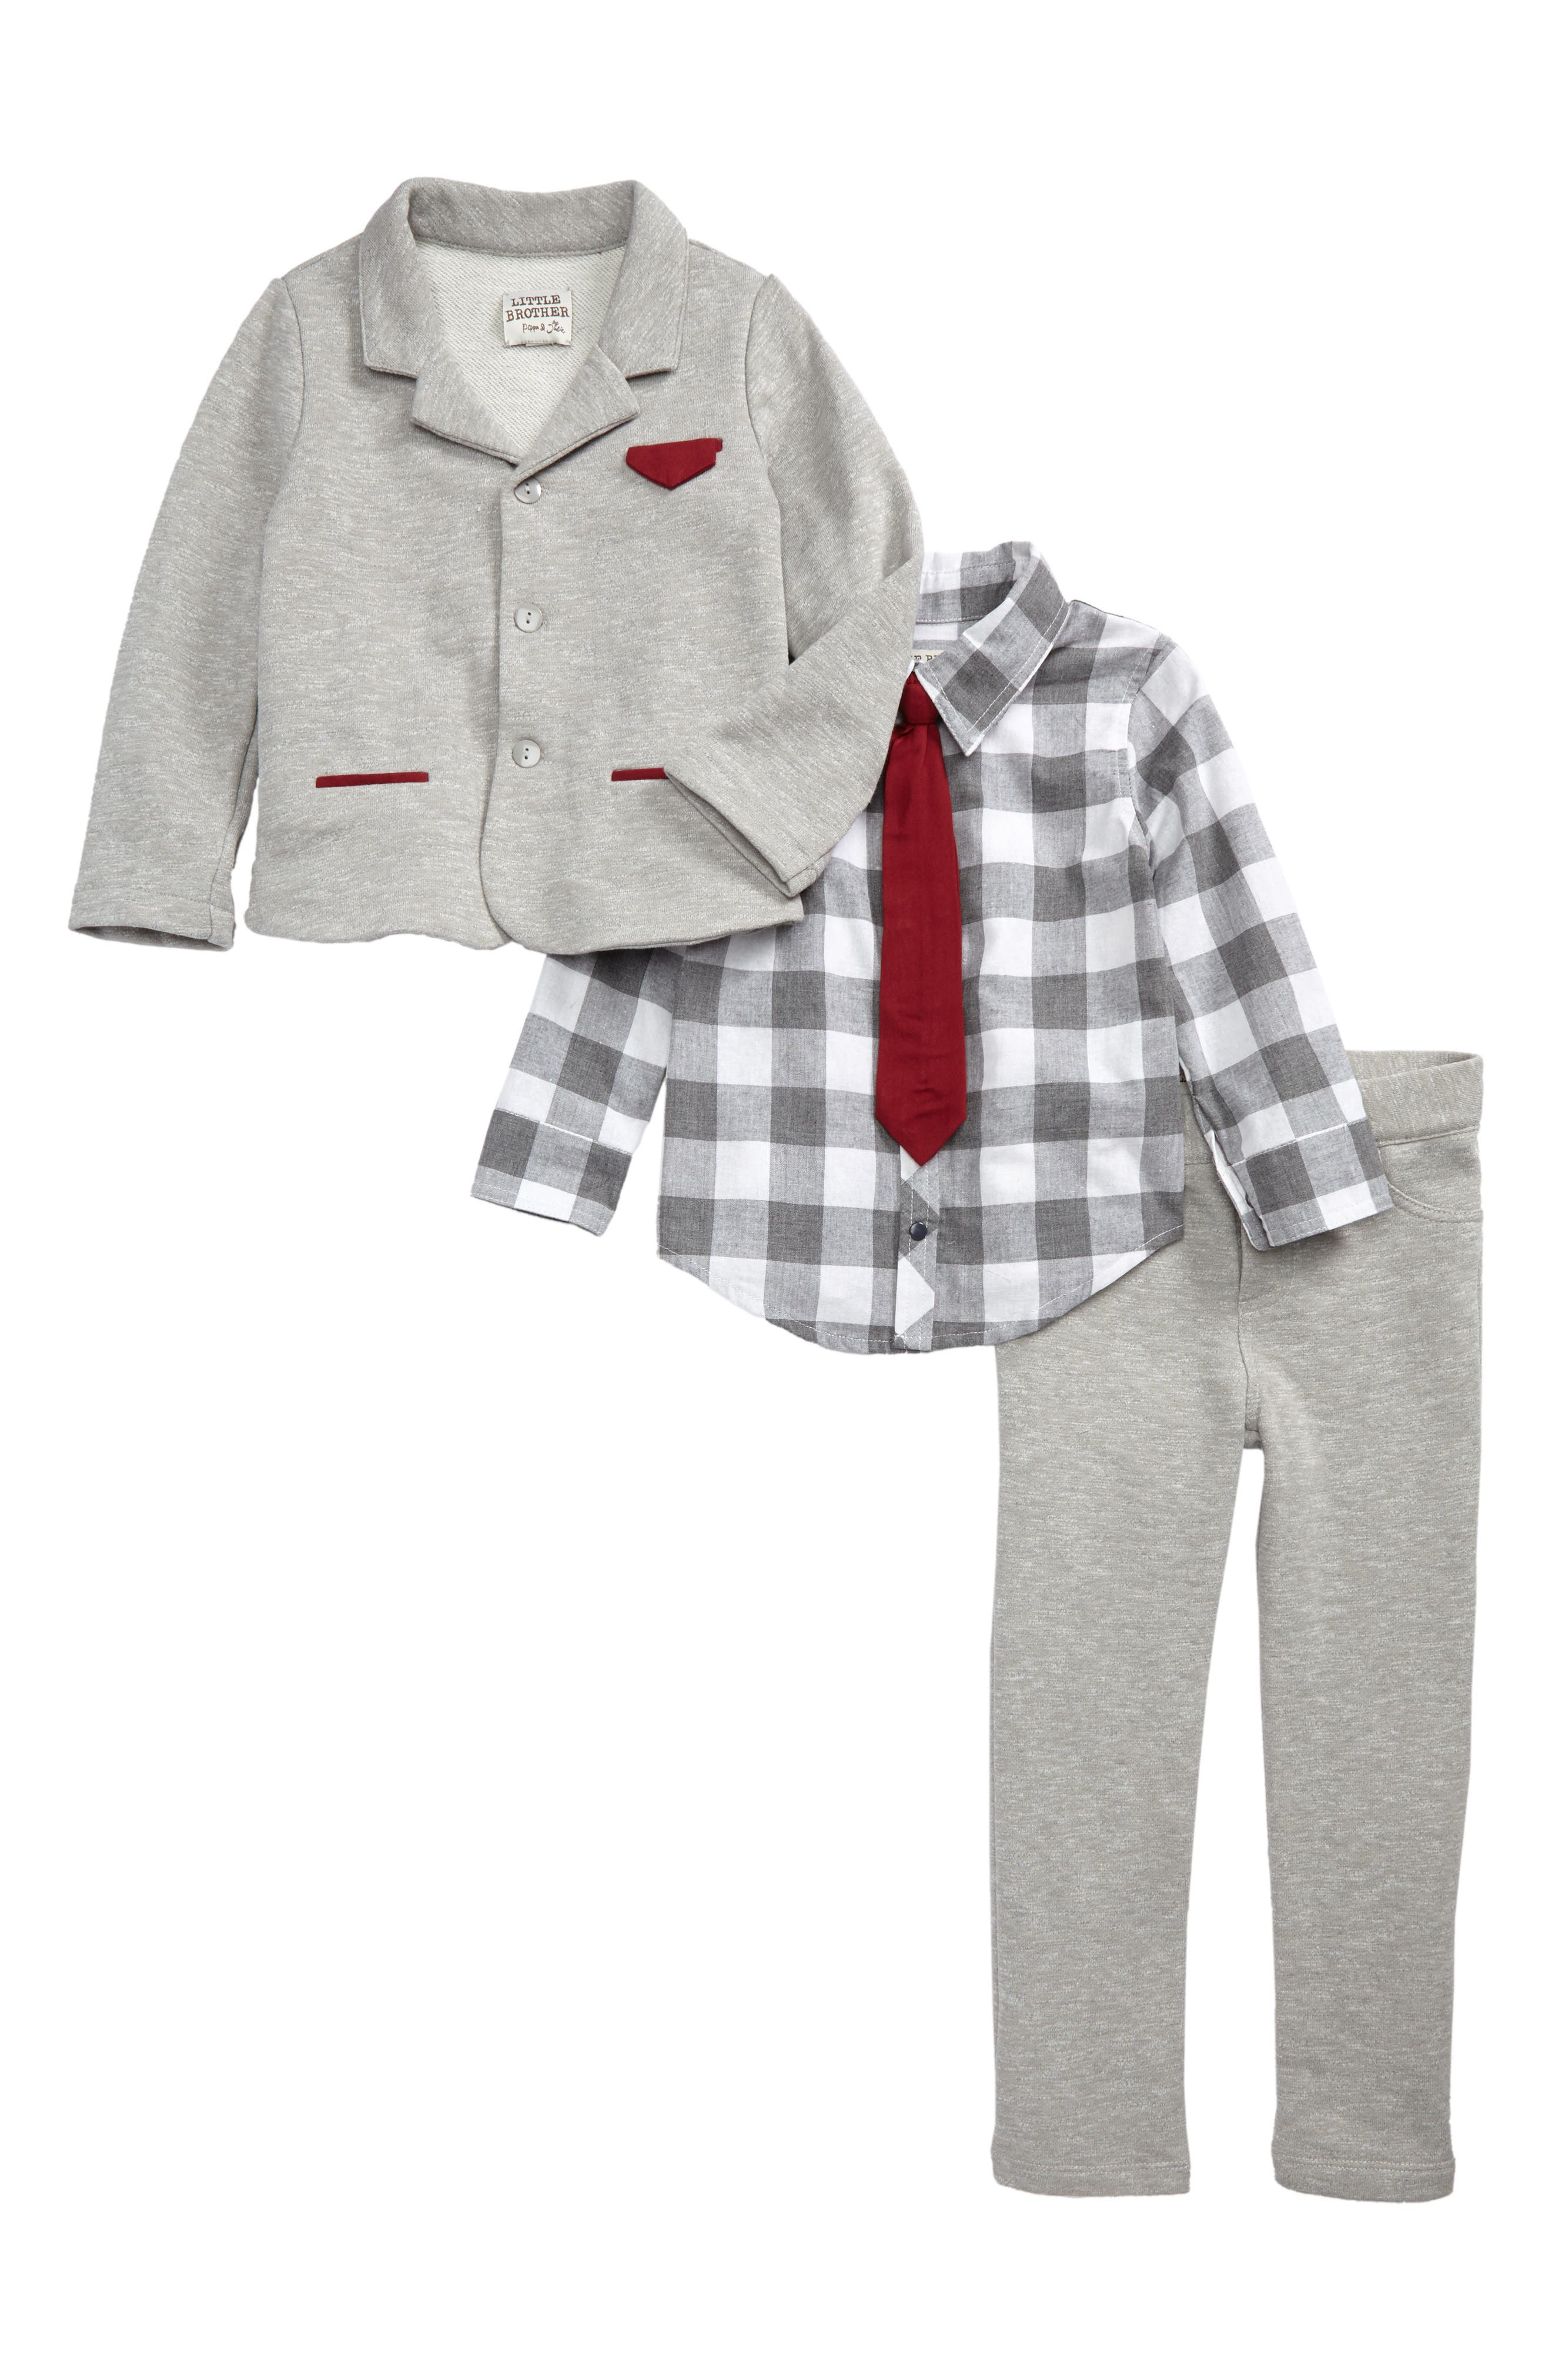 Little Brother by Pippa & Julie Check Shirt & Two-Piece Knit Suit Set (Toddler Boys)